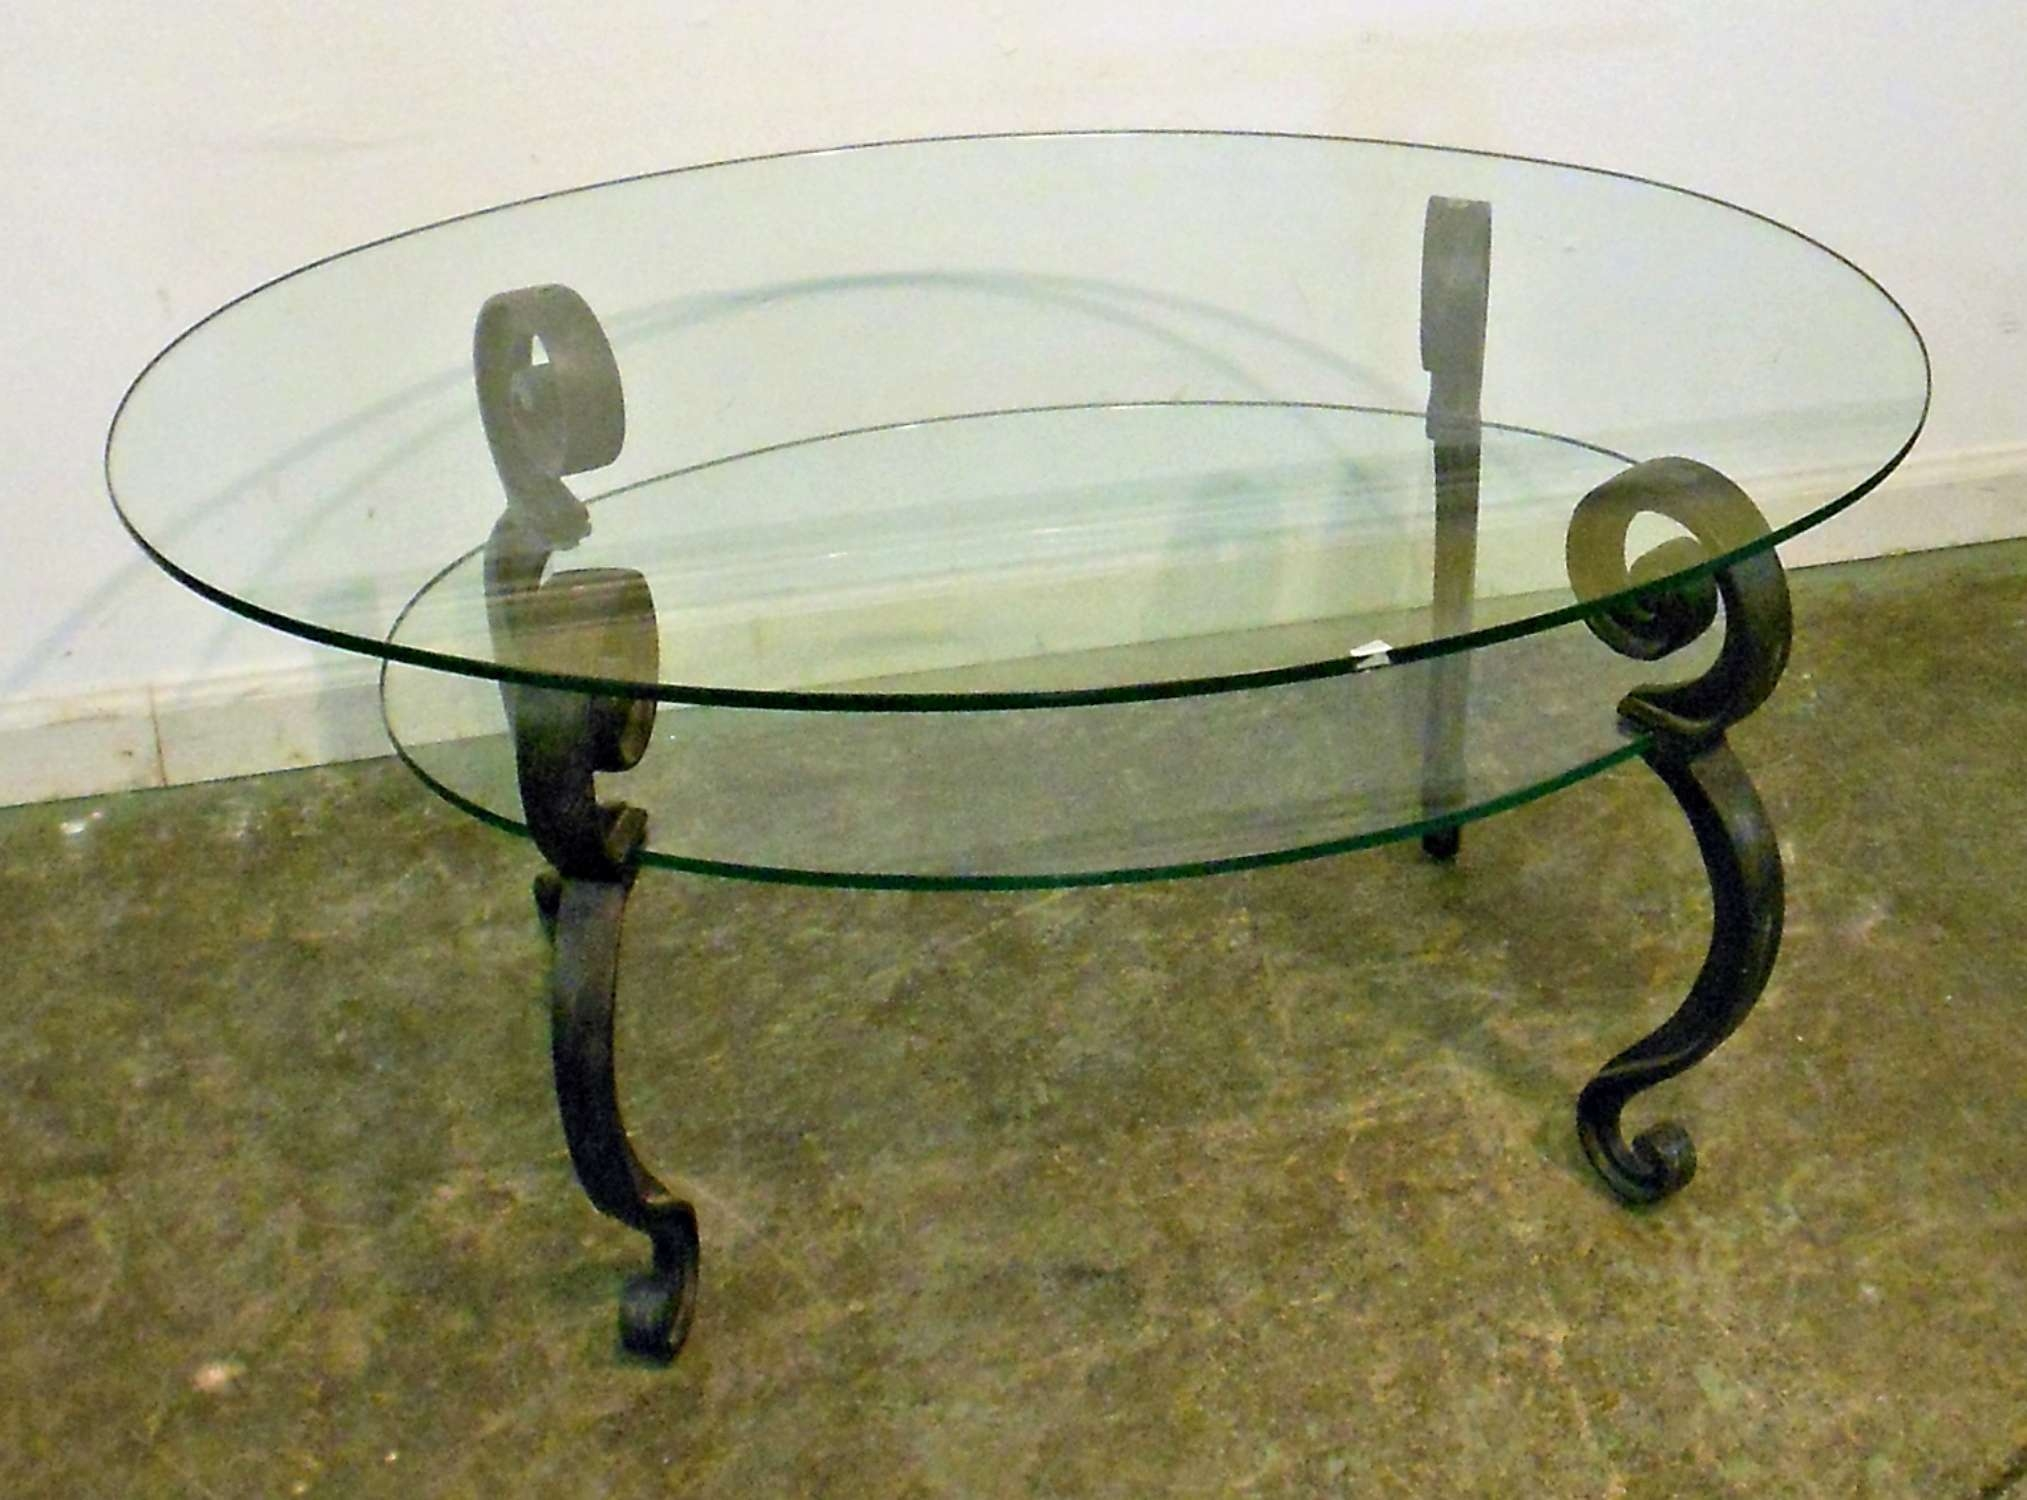 Famous Vintage Glass Top Coffee Tables Inside Vintage Glass Top Coffee Table With Black Metal Legs And Shelves (View 9 of 20)